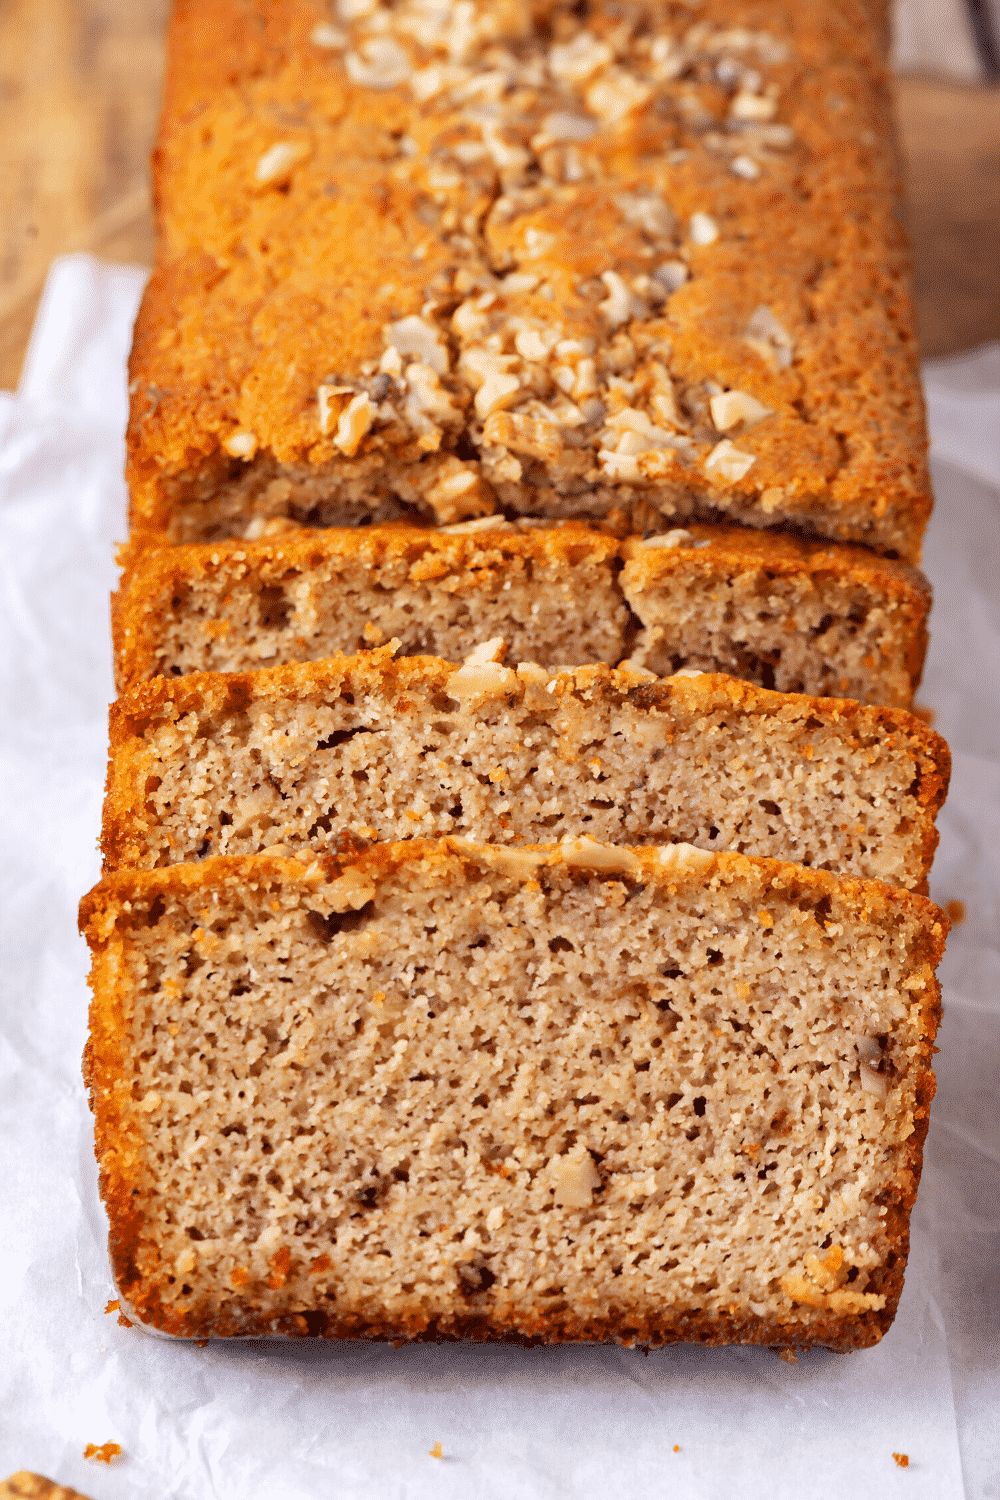 A banana bread loaf with three slices cut leaning up against the front of the loaf. The banana bread is on a piece of white parchment paper.